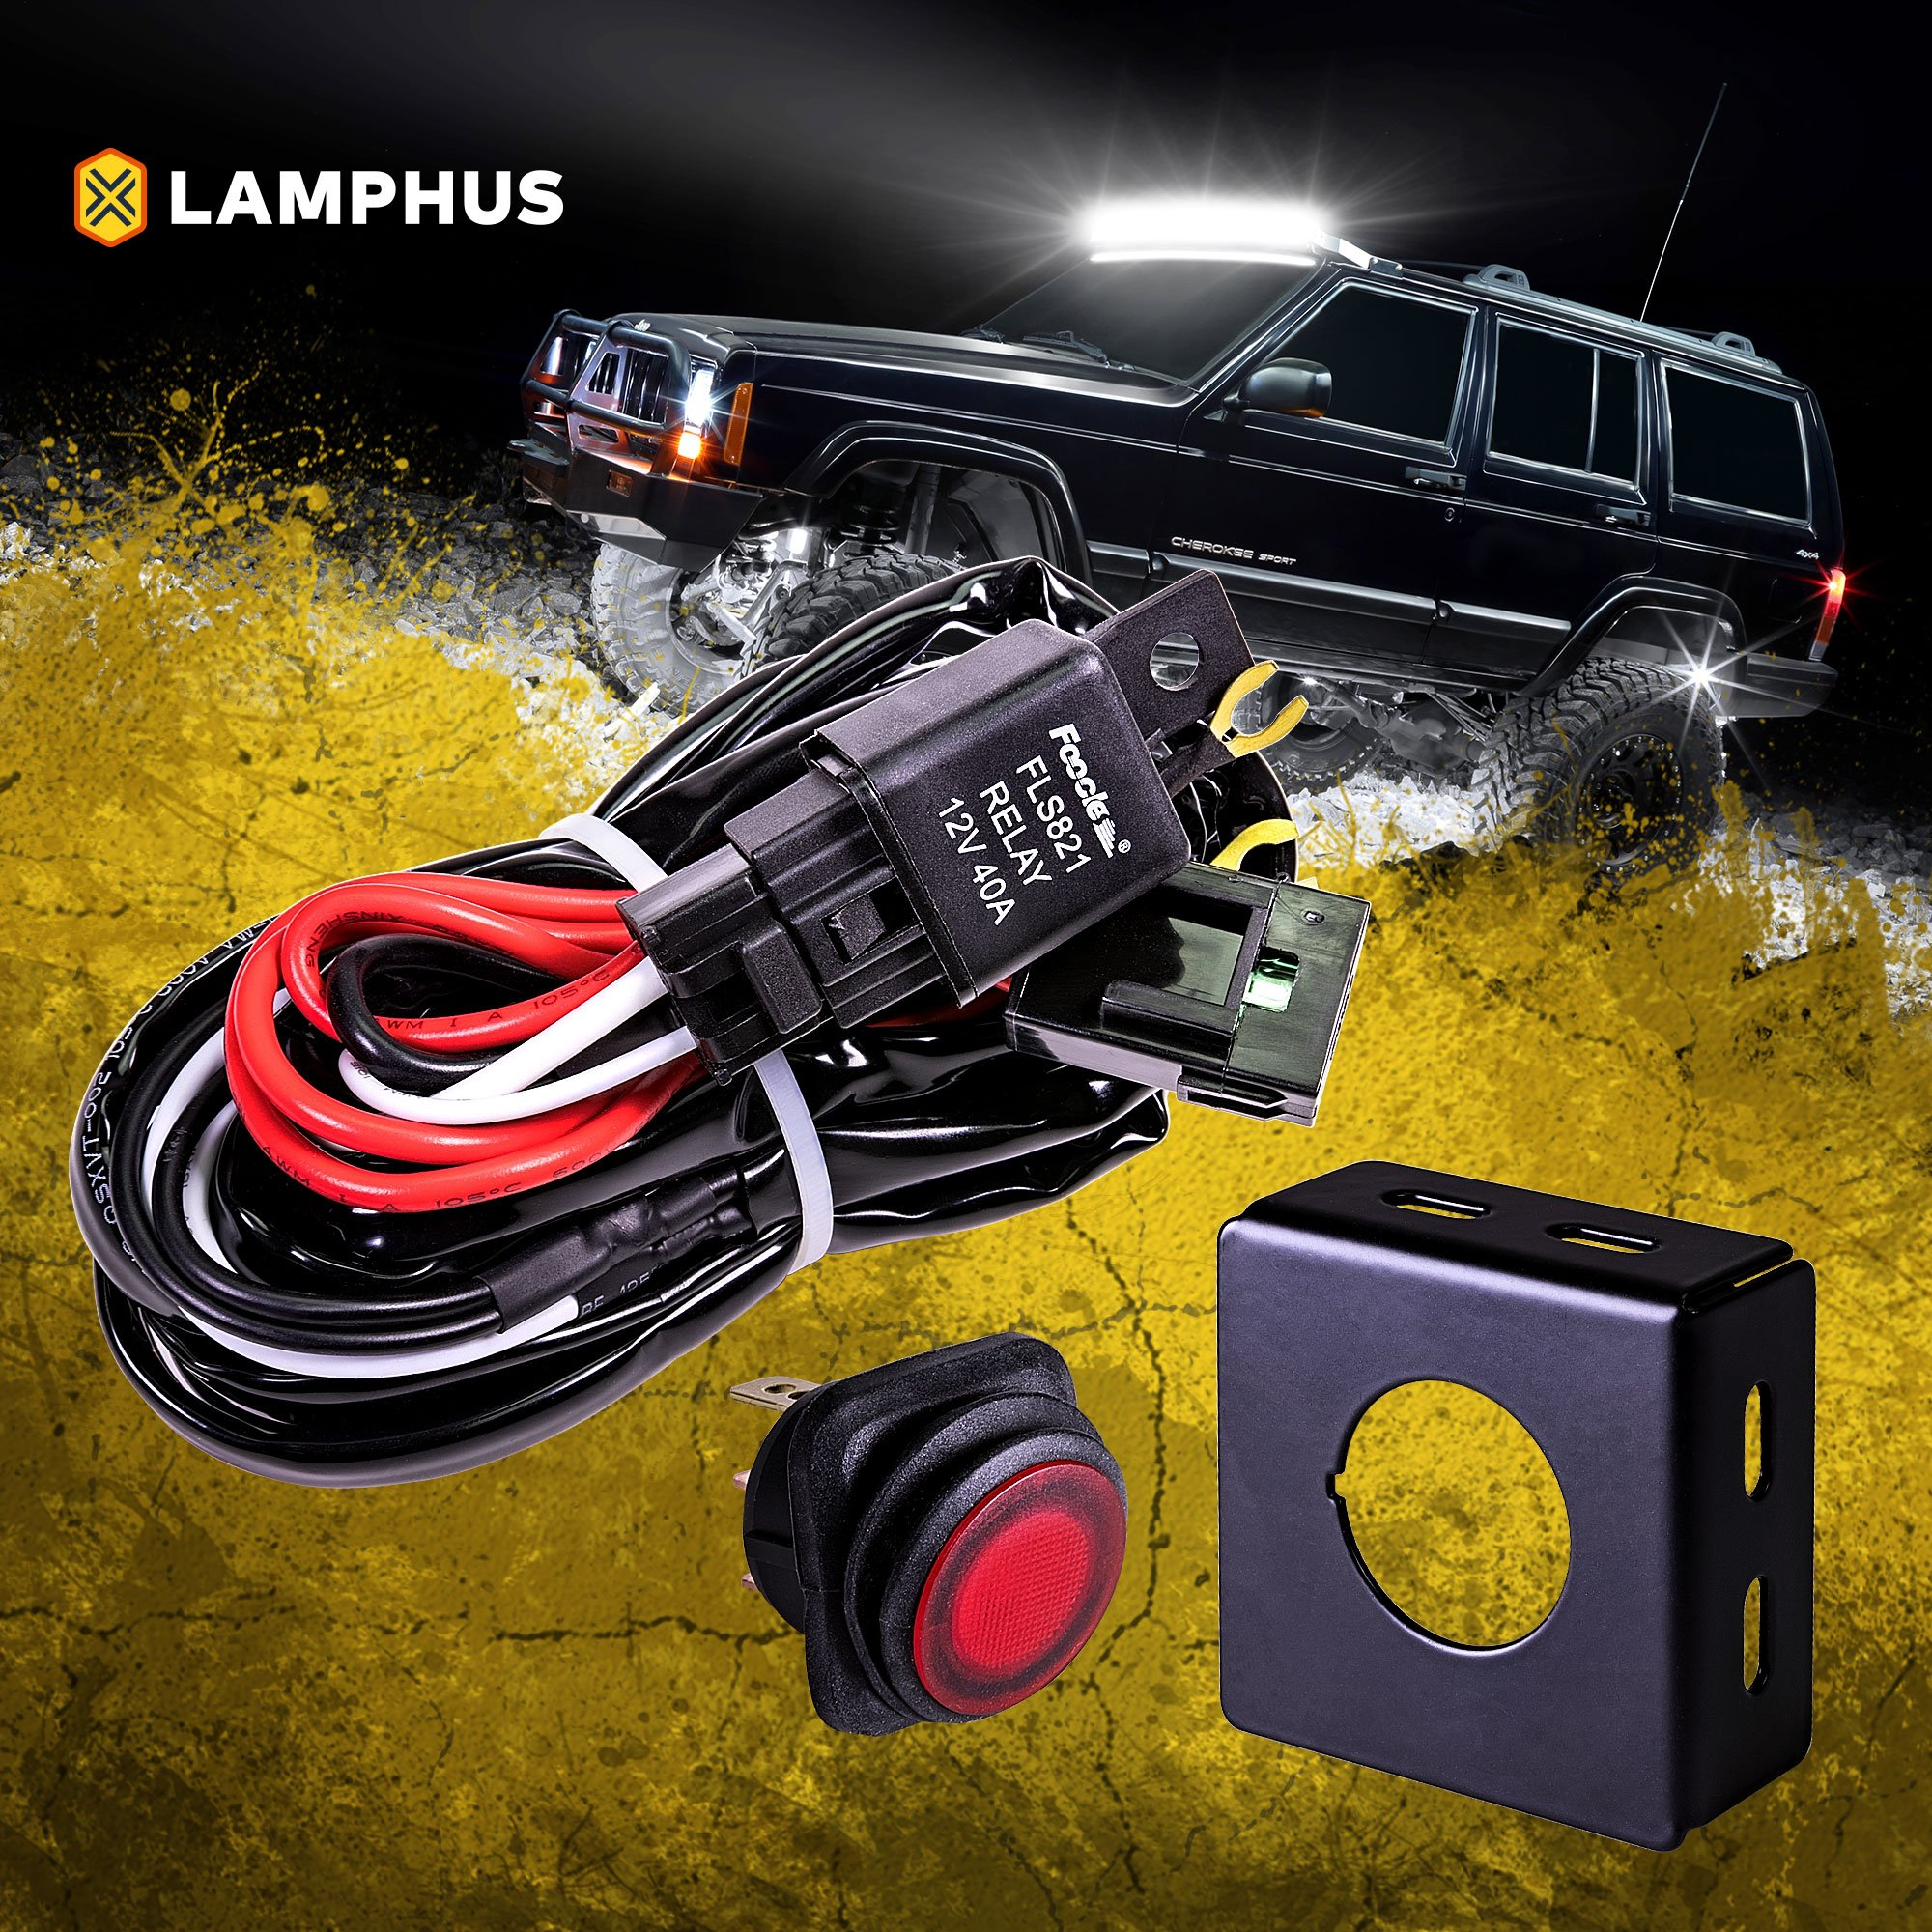 Lamphus 13 Off Road Atv Jeep Led Light Bar Wiring Harness Kit Together With Waterproof